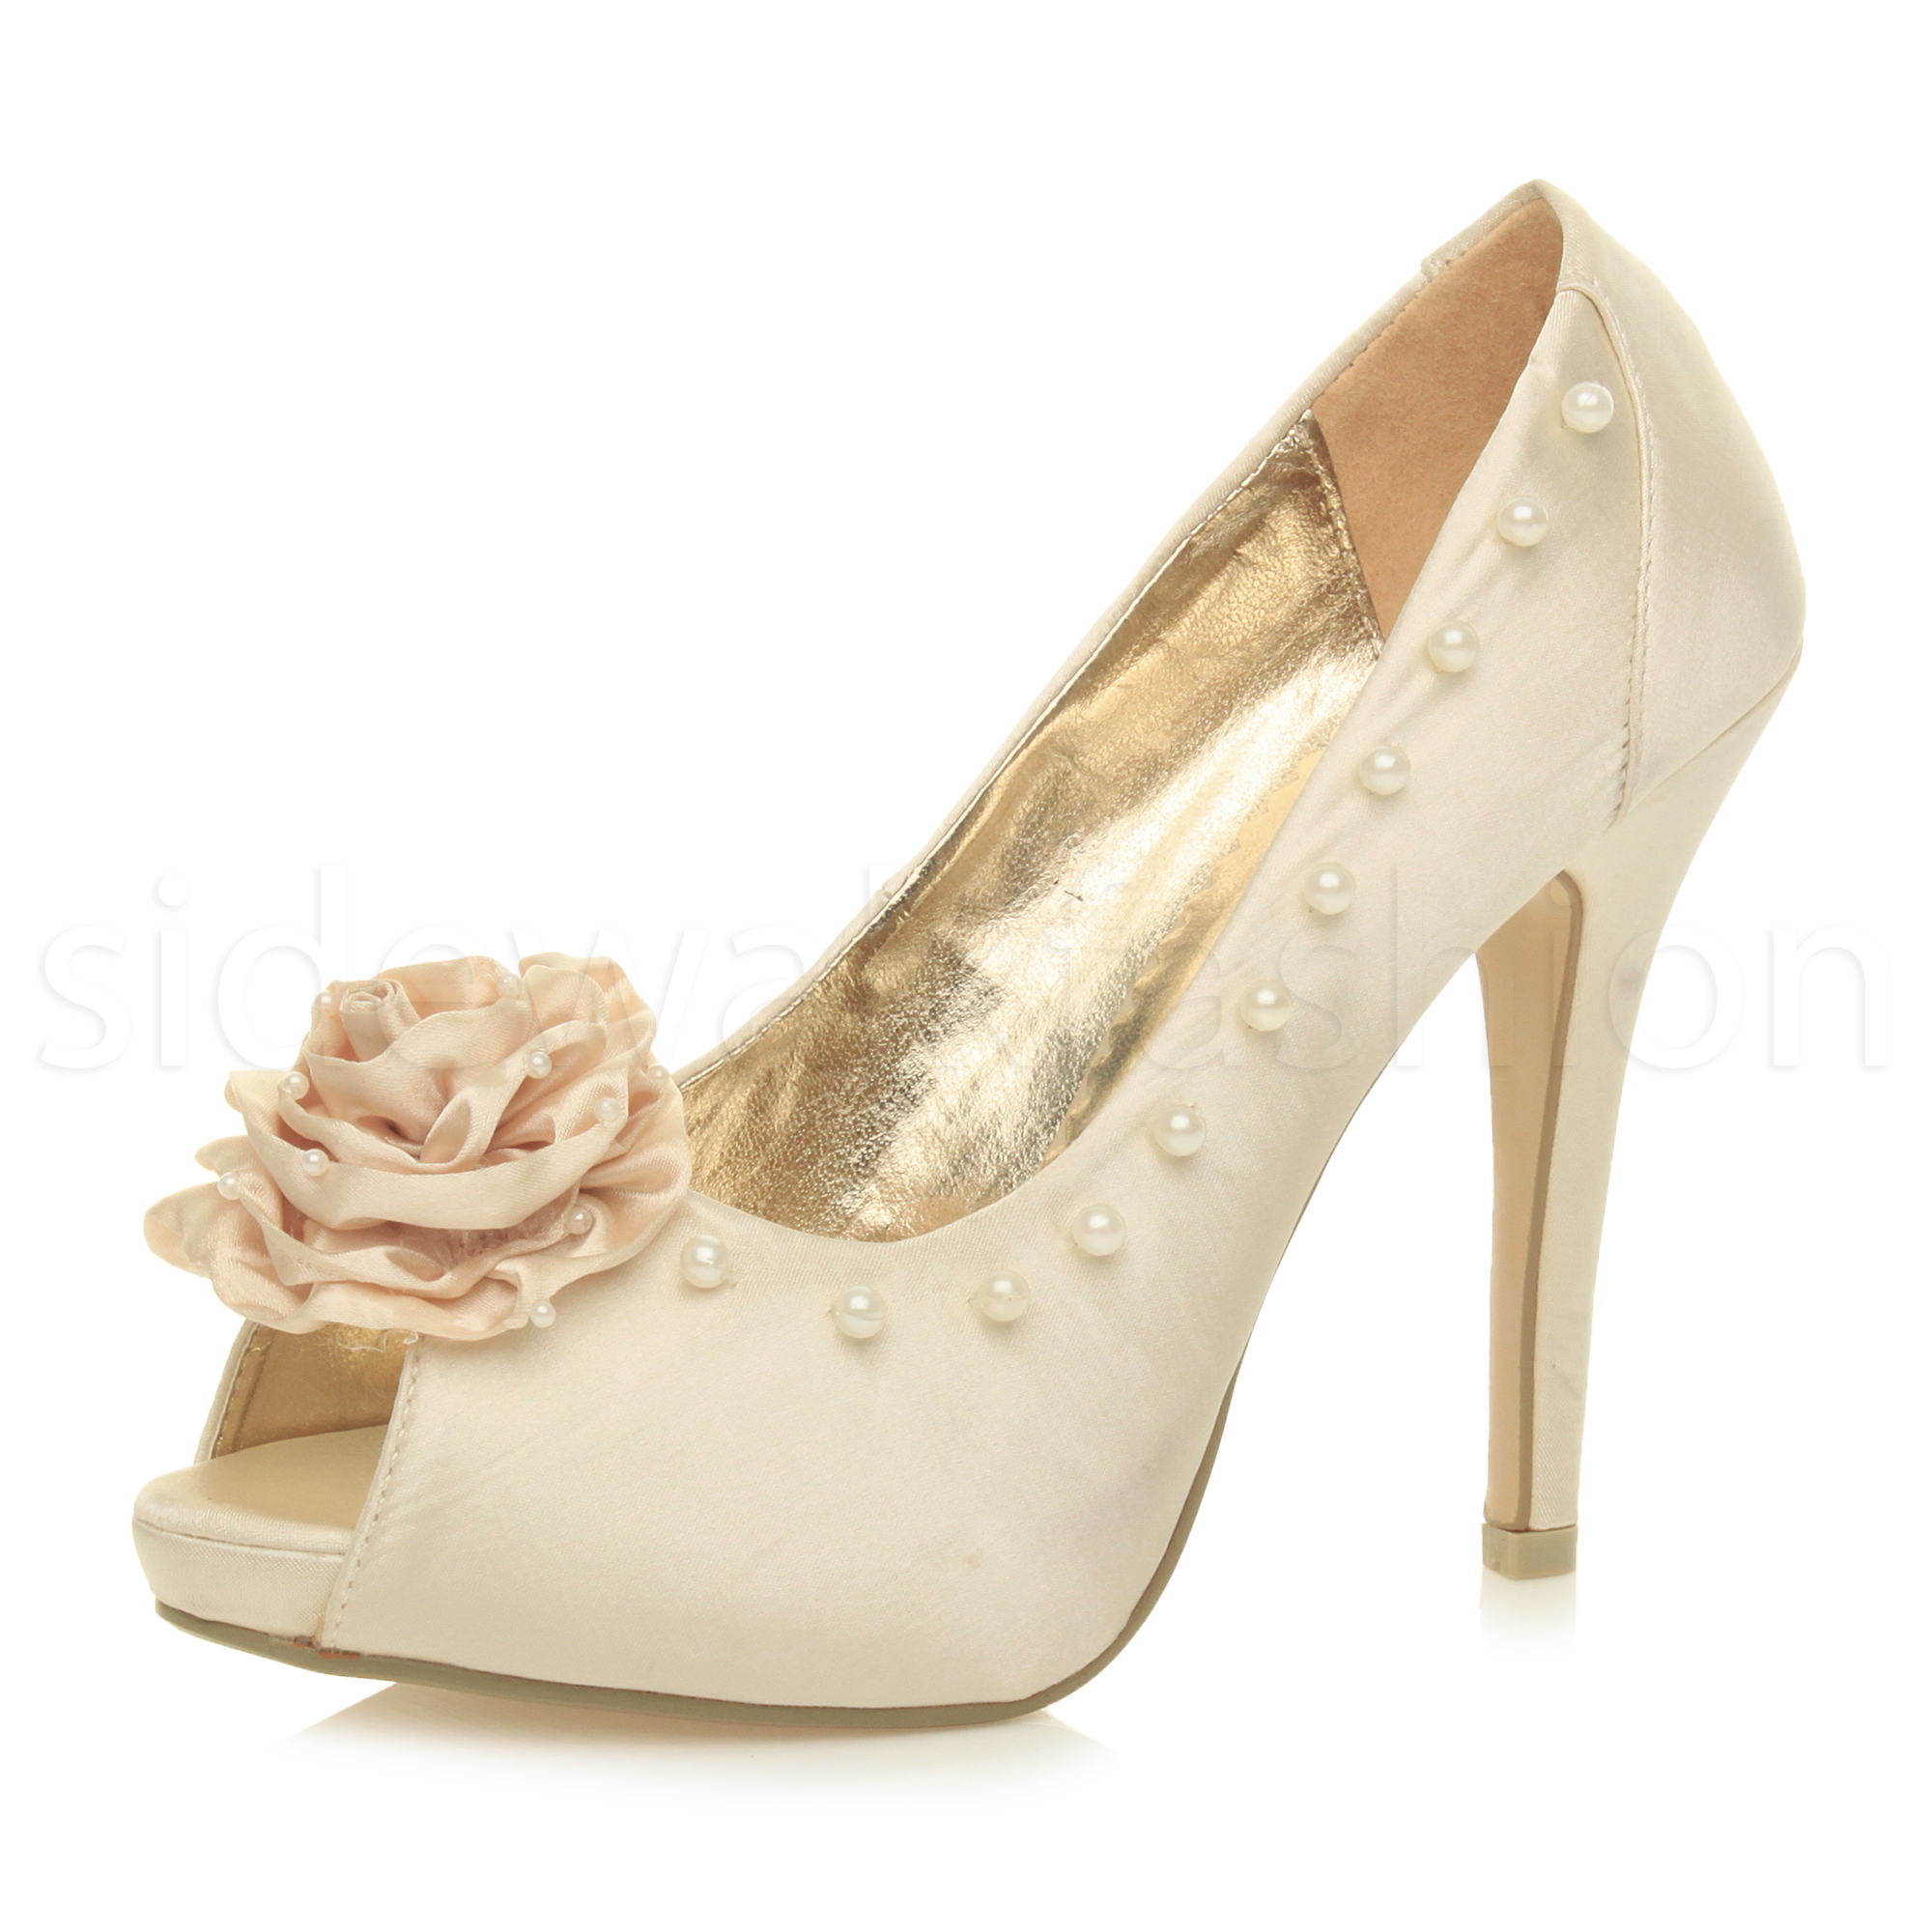 Buy White Pearl Ankle Strap High Stiletto Heels From orimono.ga will find many fashionable products from Hottest & Must-Have collections.